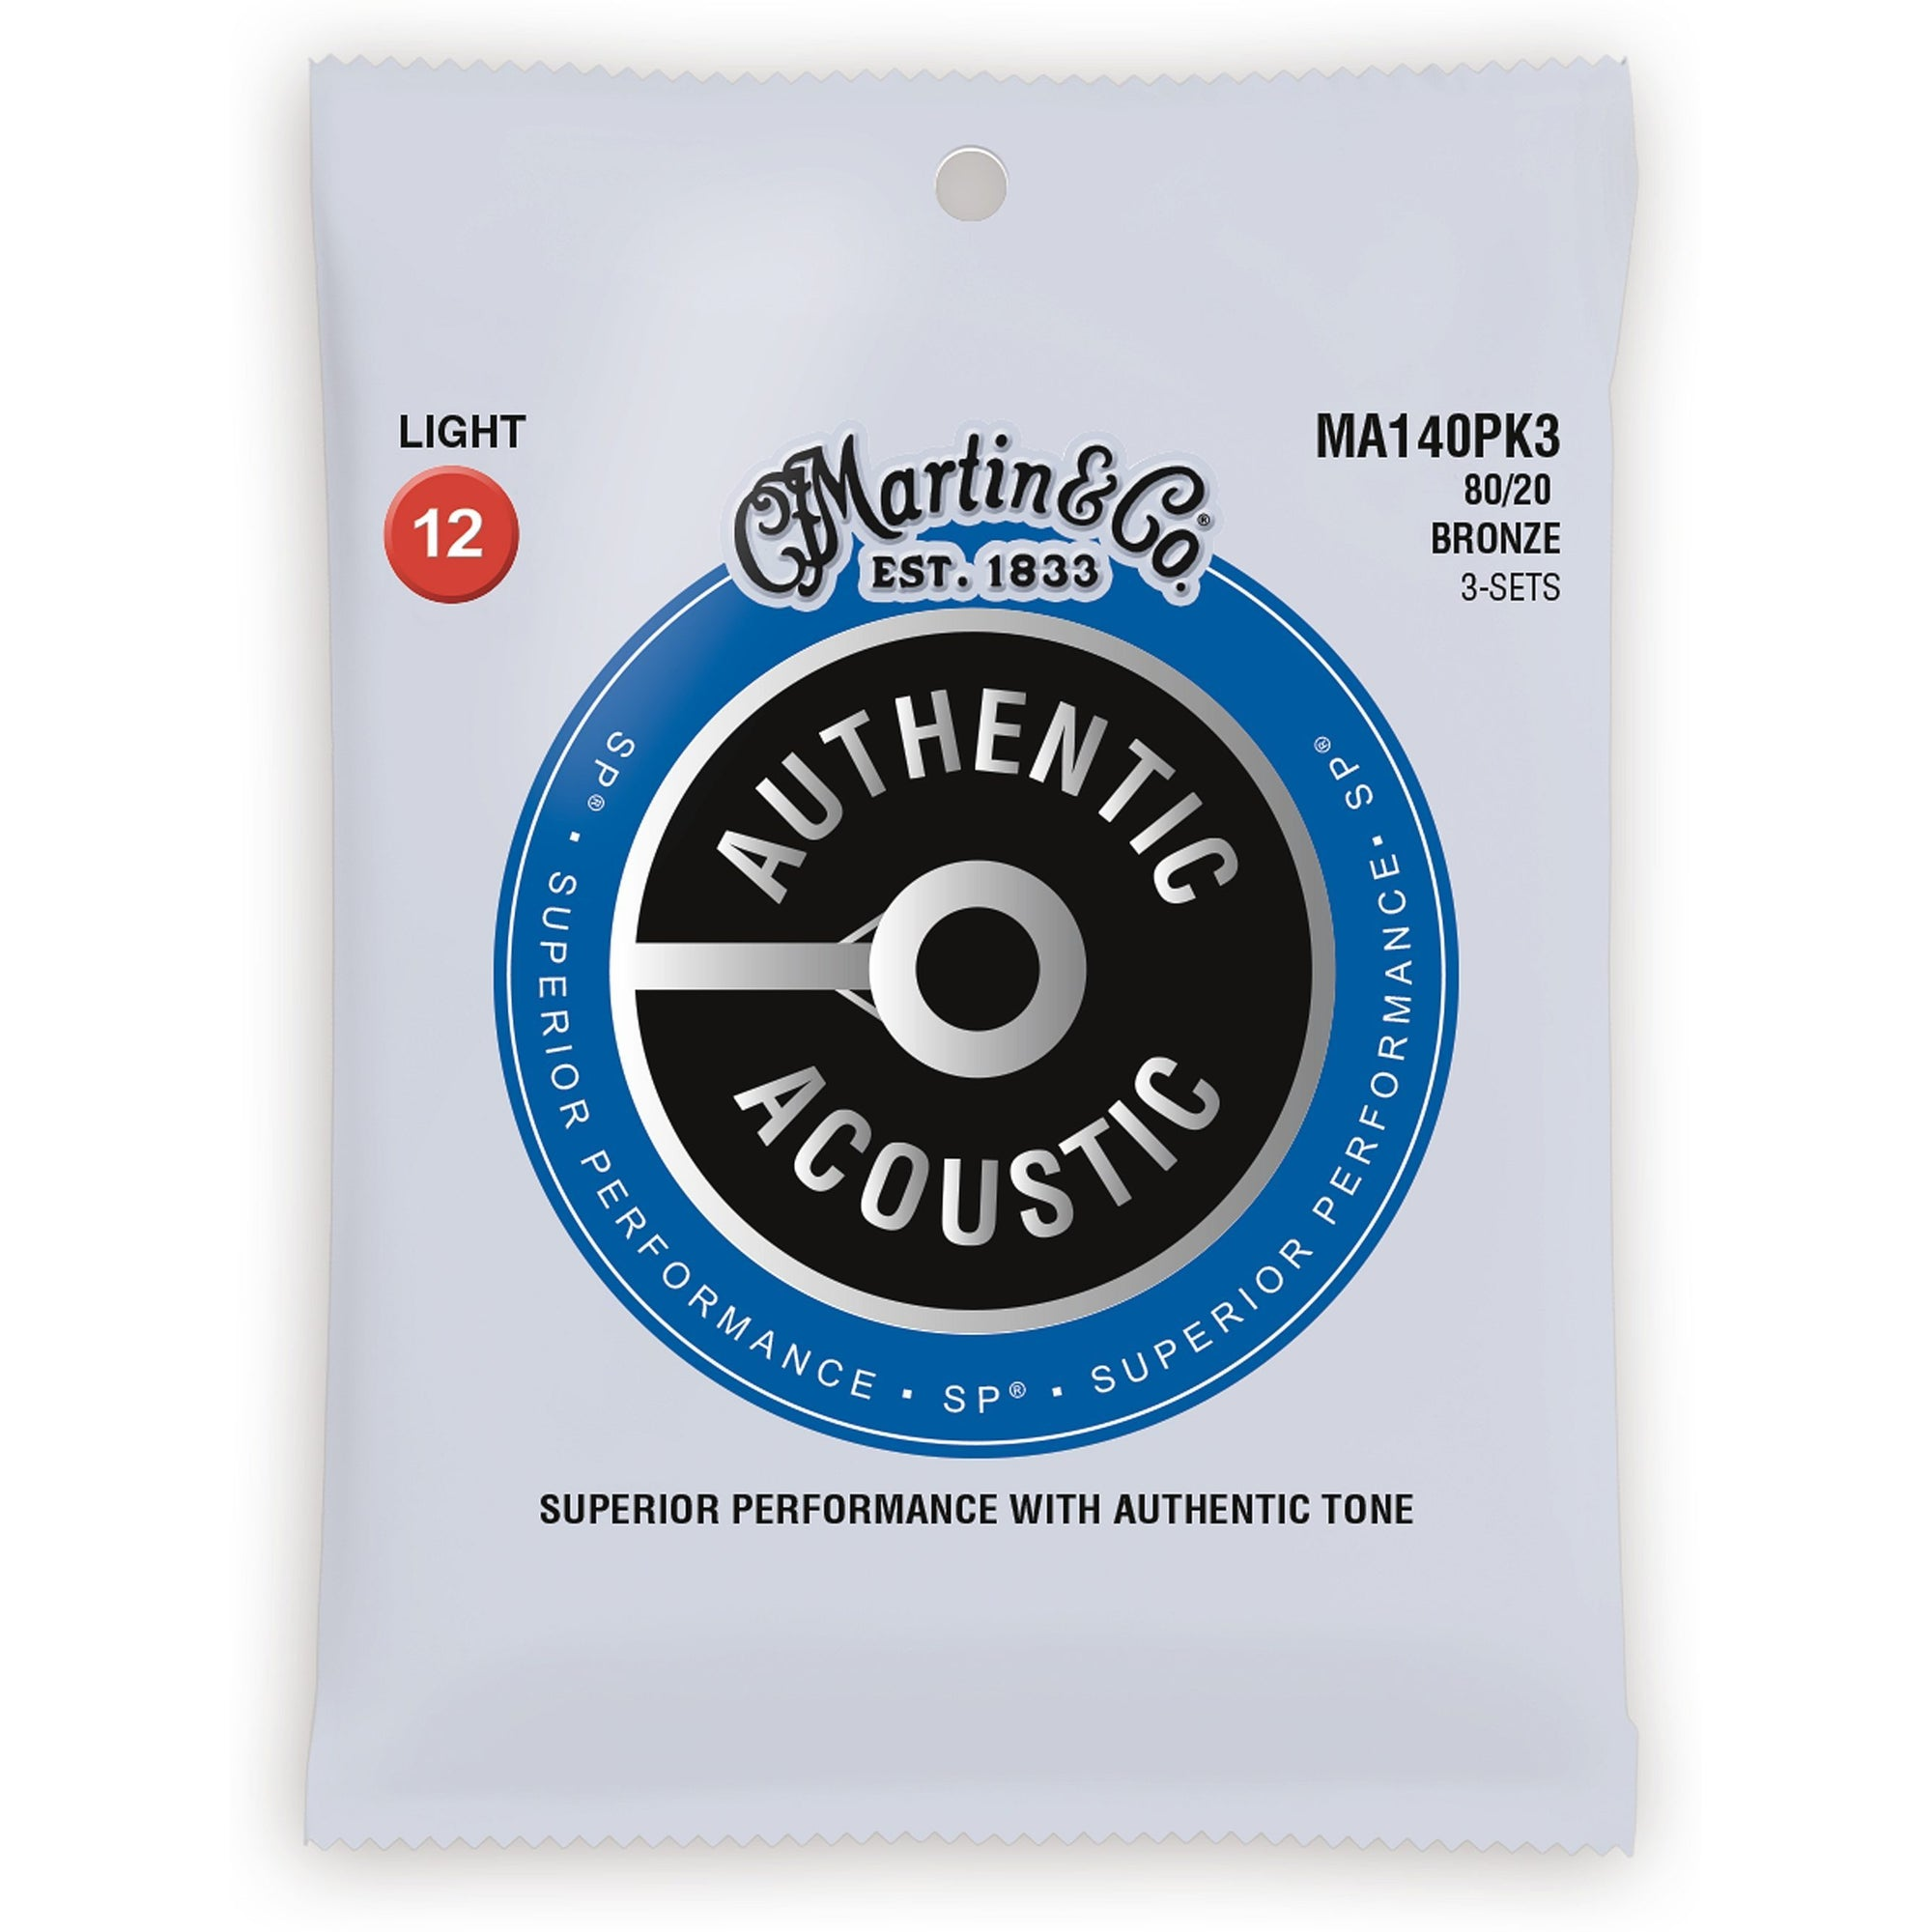 Martin Authentic SP 80/20 Bronze Acoustic Guitar Strings, MA140, 3-Pack, Light